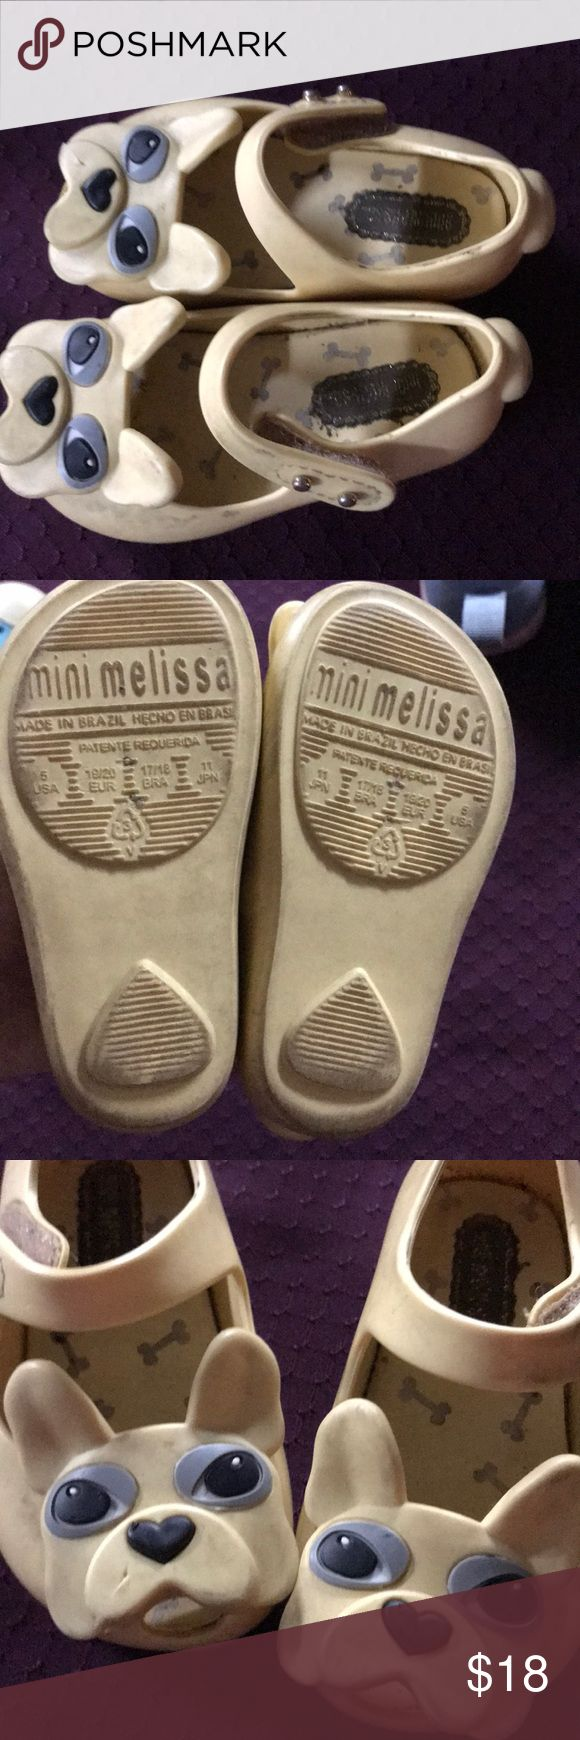 Bulldog Mini Melissa peep toe Mary Janes Cream colored Bulldog Mini Melissa peep toe Mary Janes   Adorable. Size 5 but I think they run a little small. So 4.5?  Title tooth mark on the one dog right shoe face bc of our dog. 😂 Mini Melissa Shoes Dress Shoes